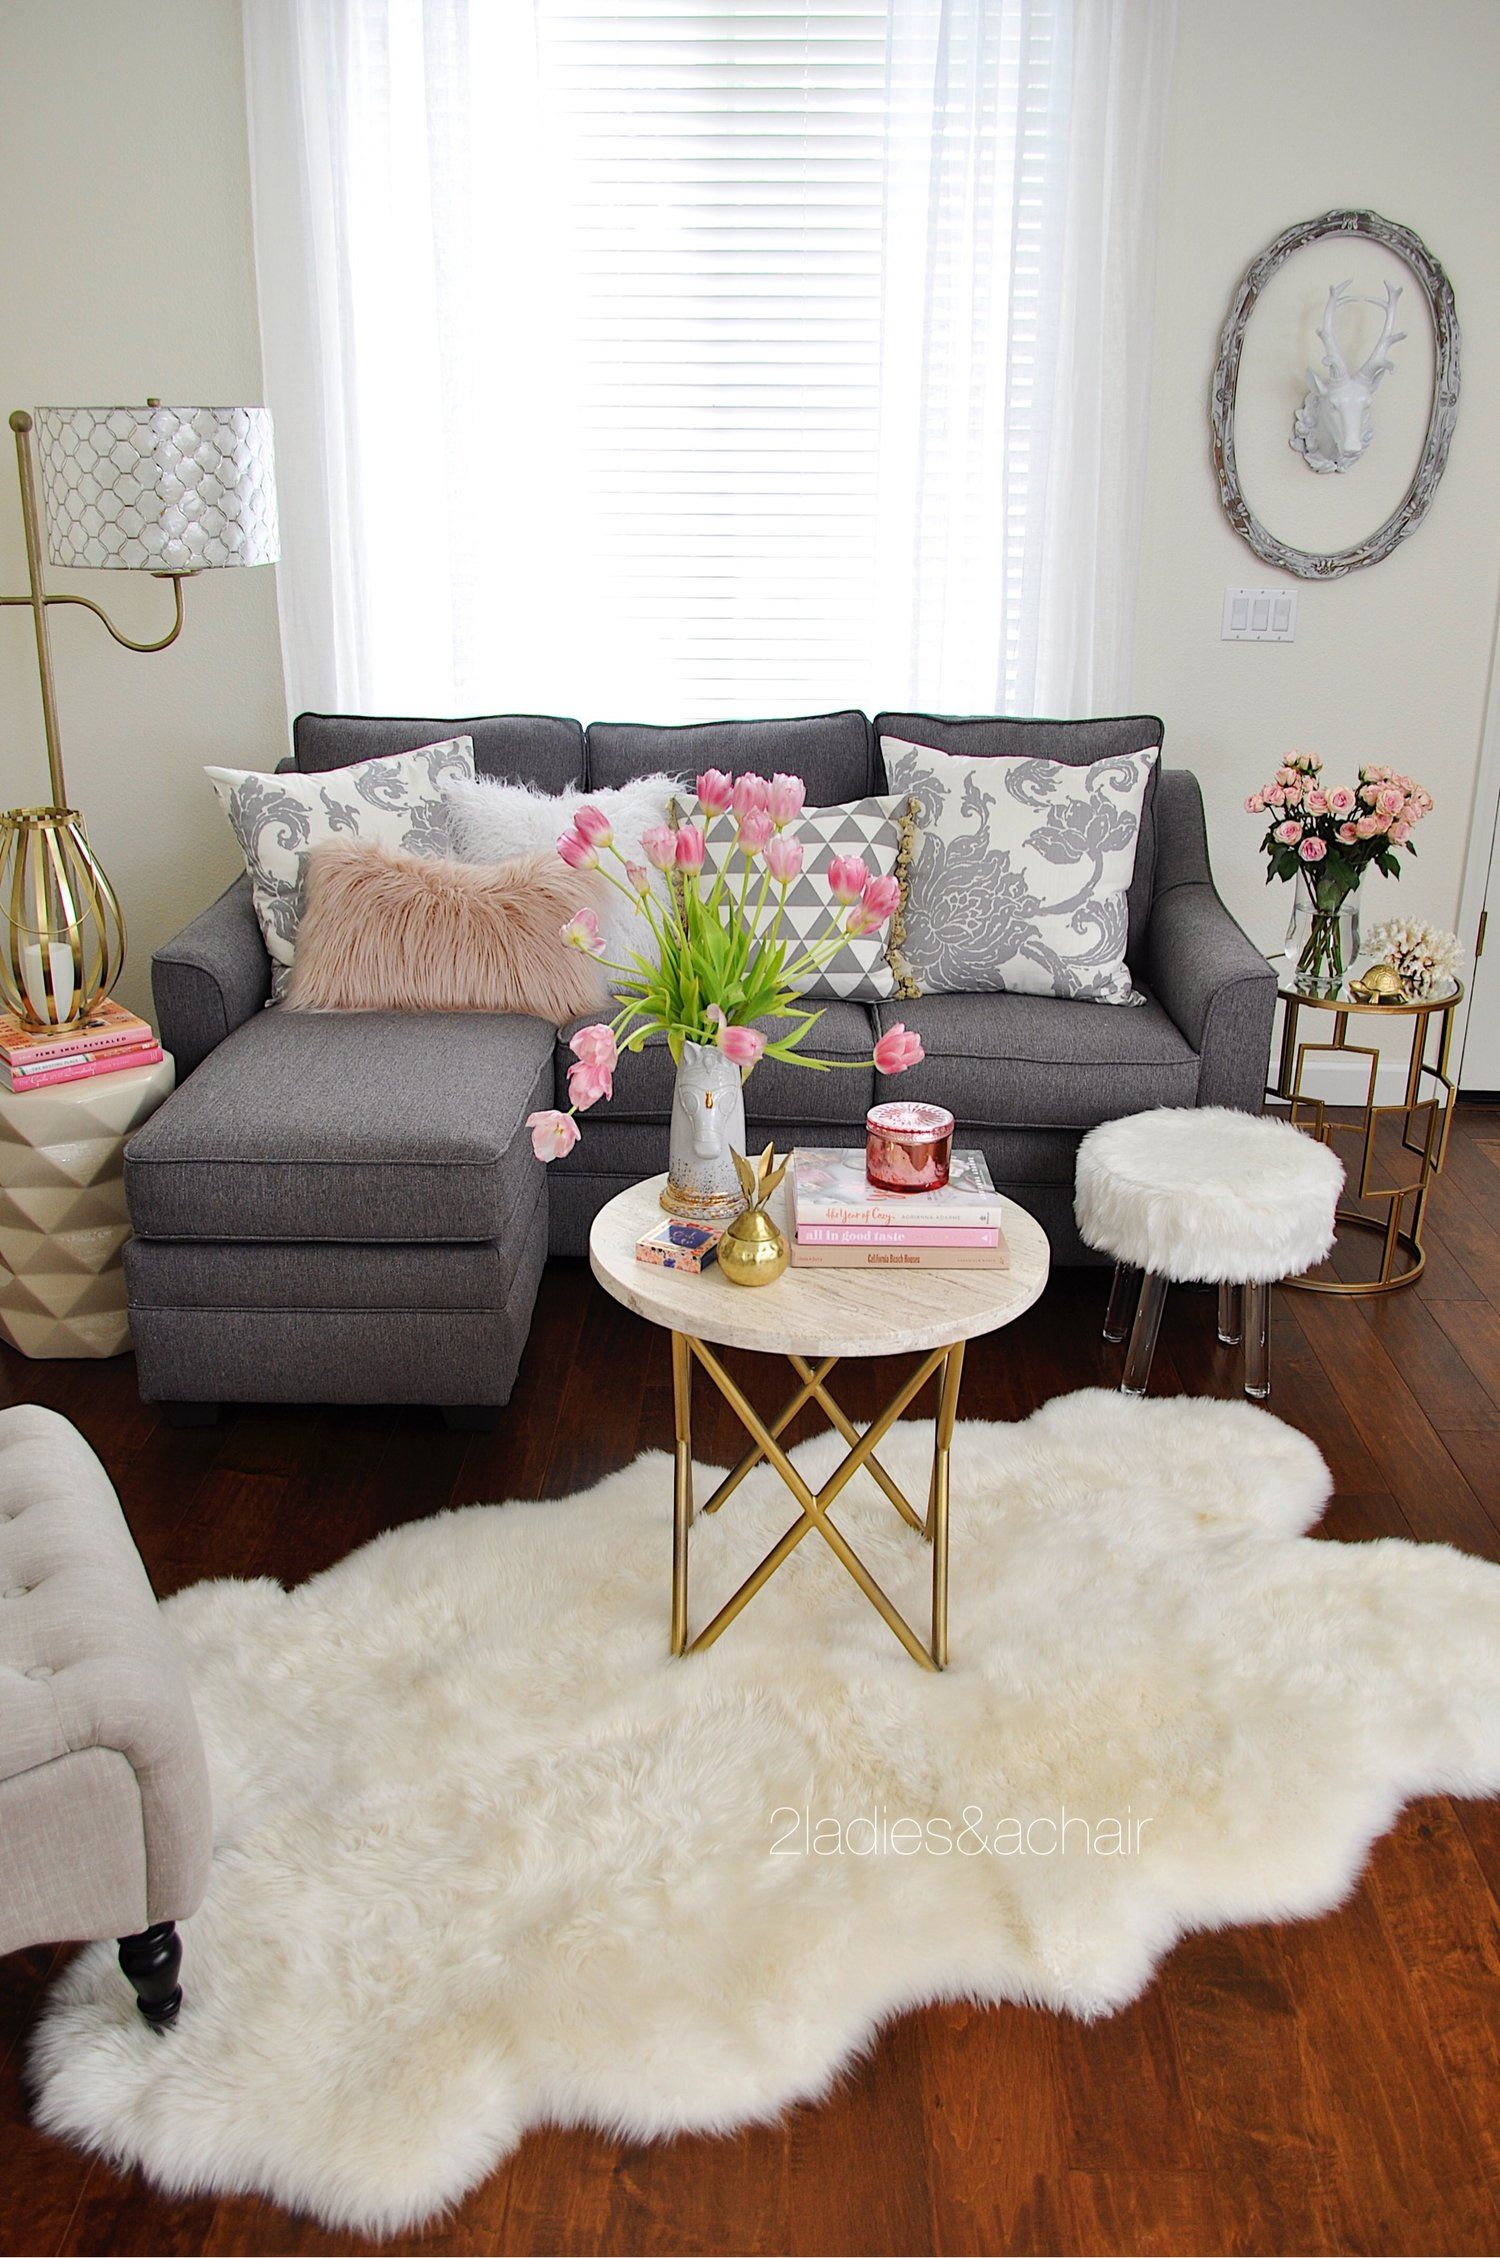 14 Ideas To Style Your Home For Spring Small Living Room Design